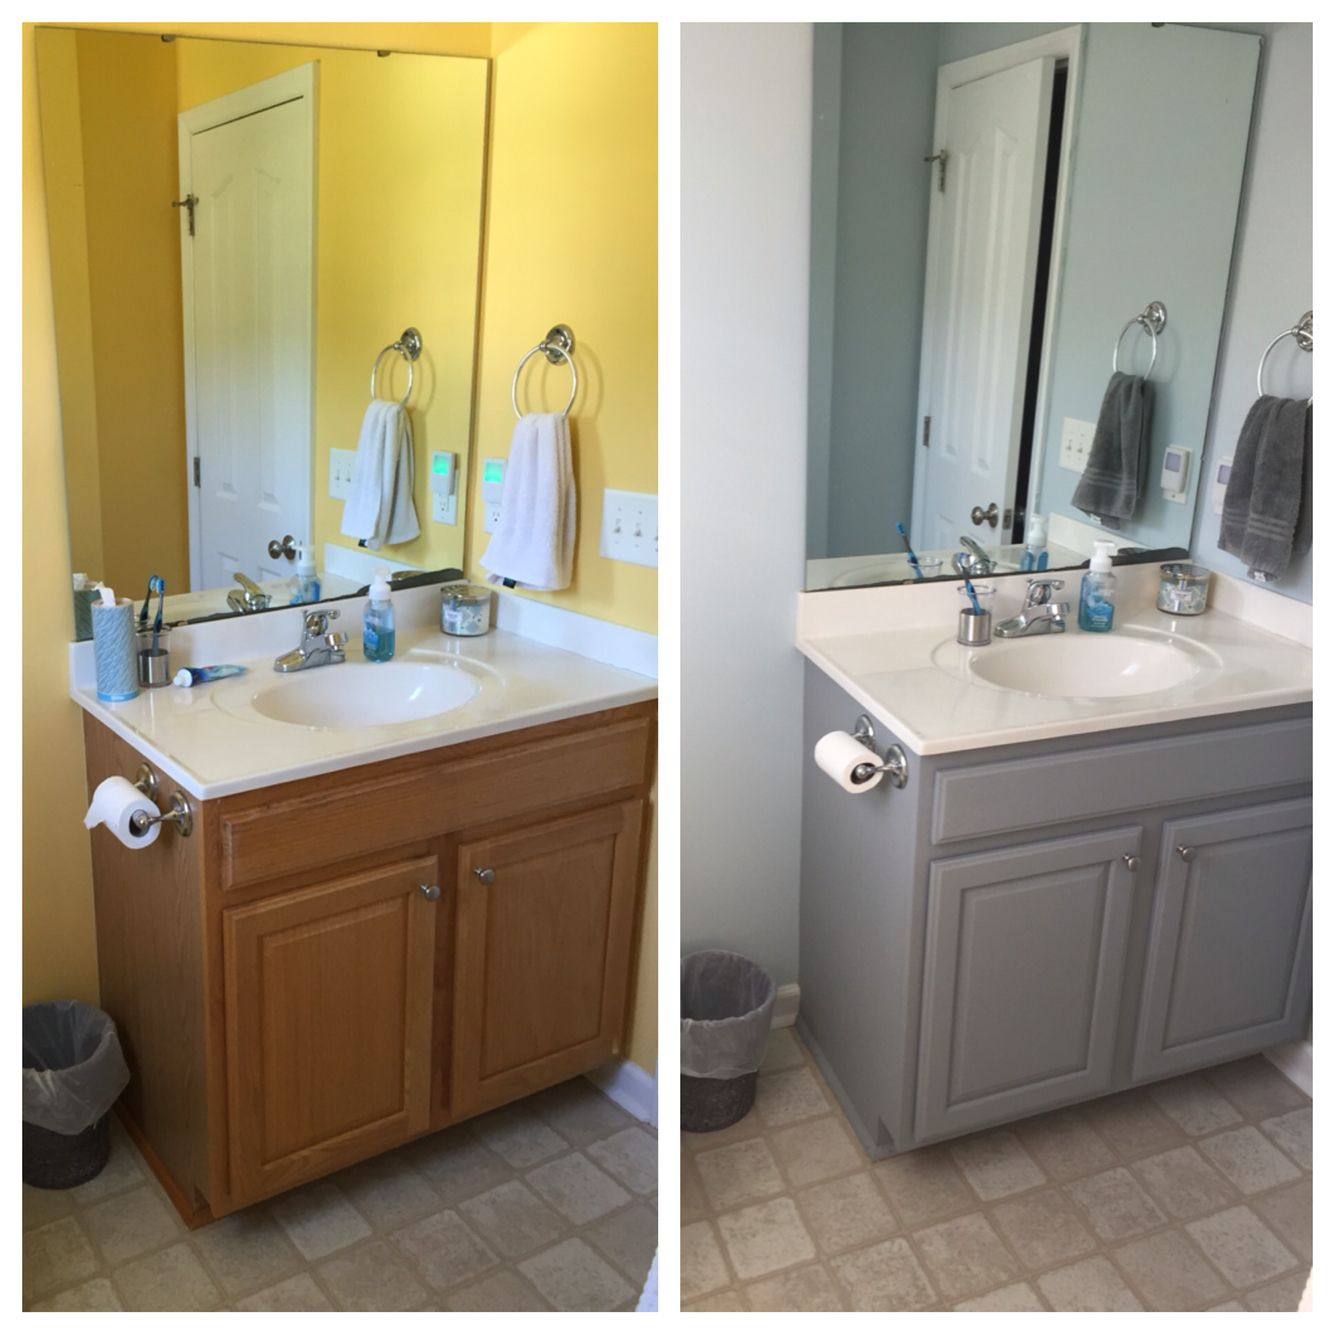 Before and after bathroom cabinet valspar chalky paint in for Valspar kitchen and bath paint